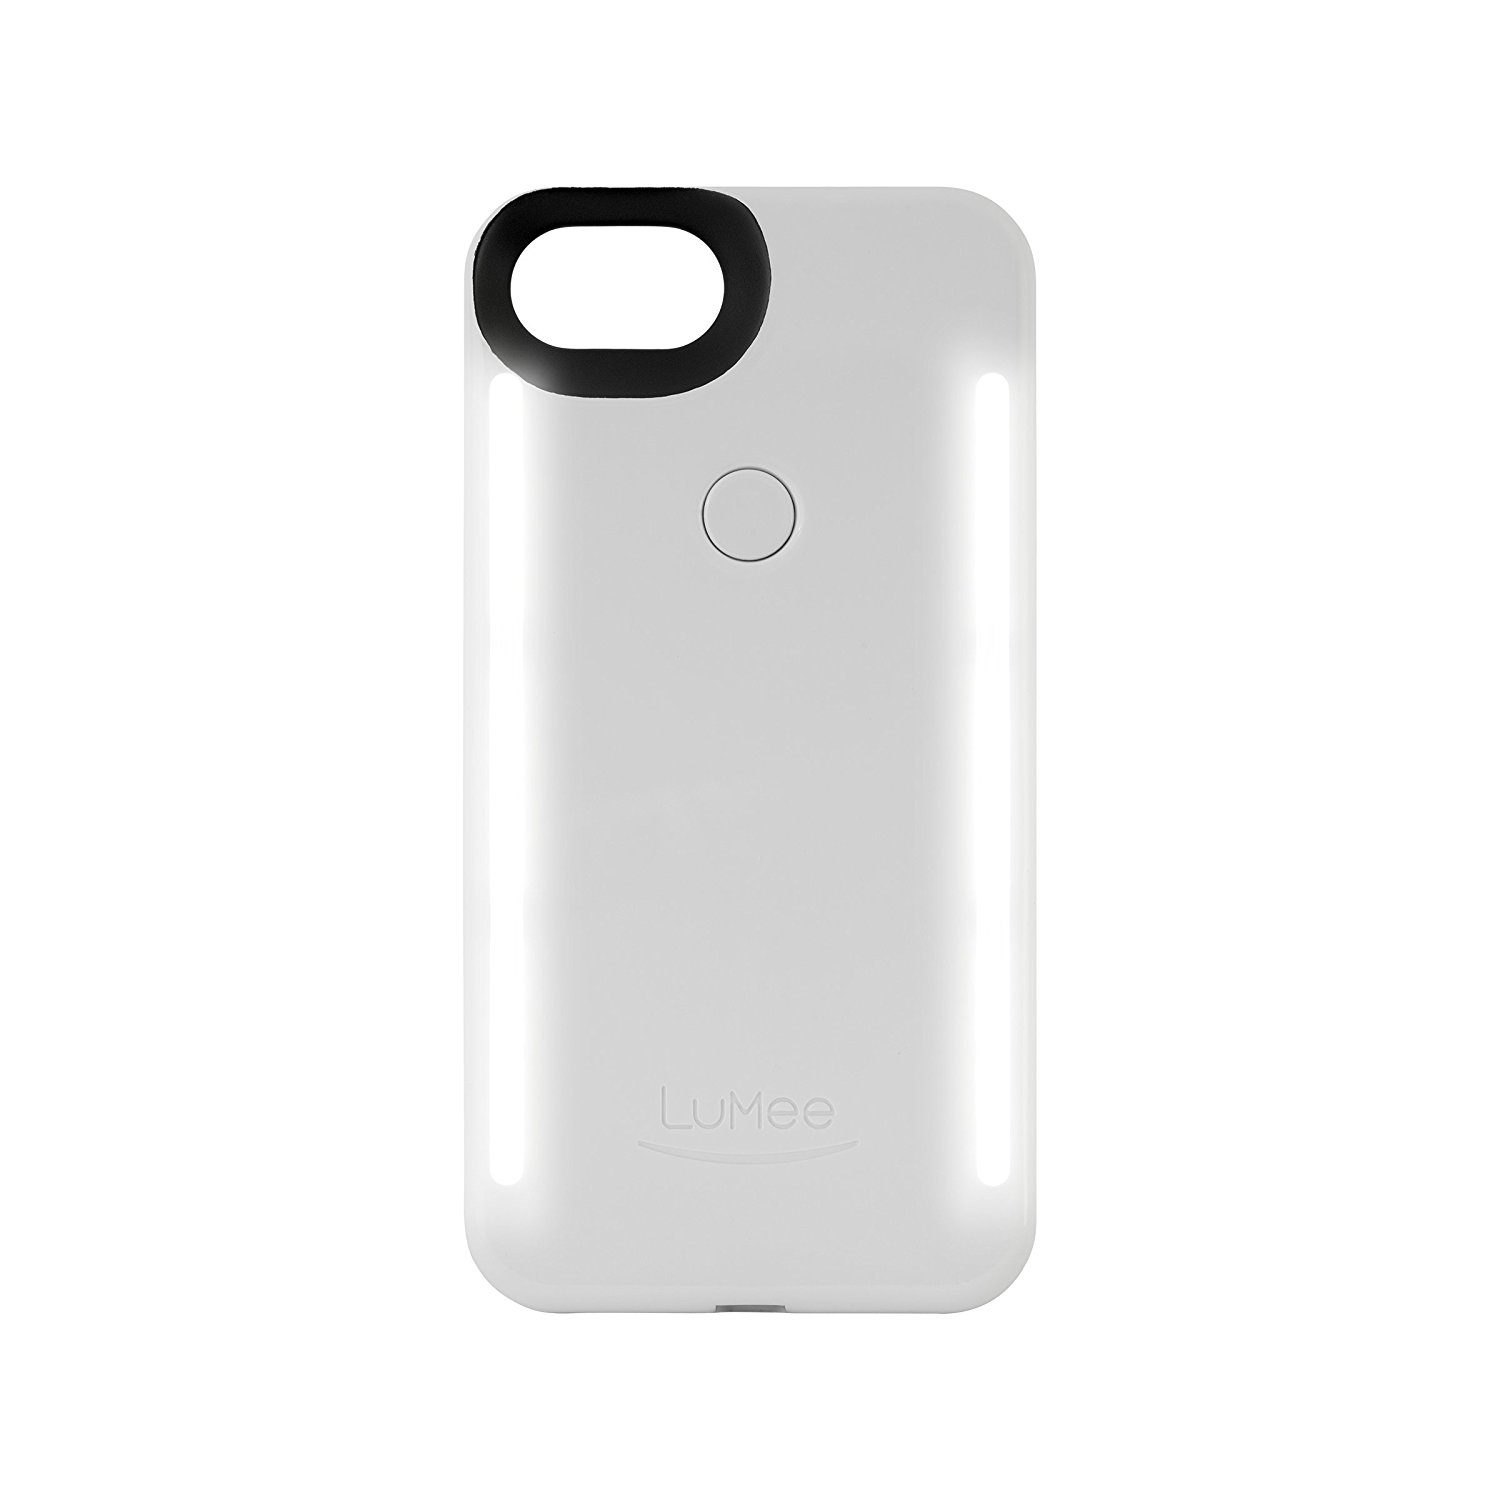 LUMEE Duo iPhone 7 Plus - White Glossy